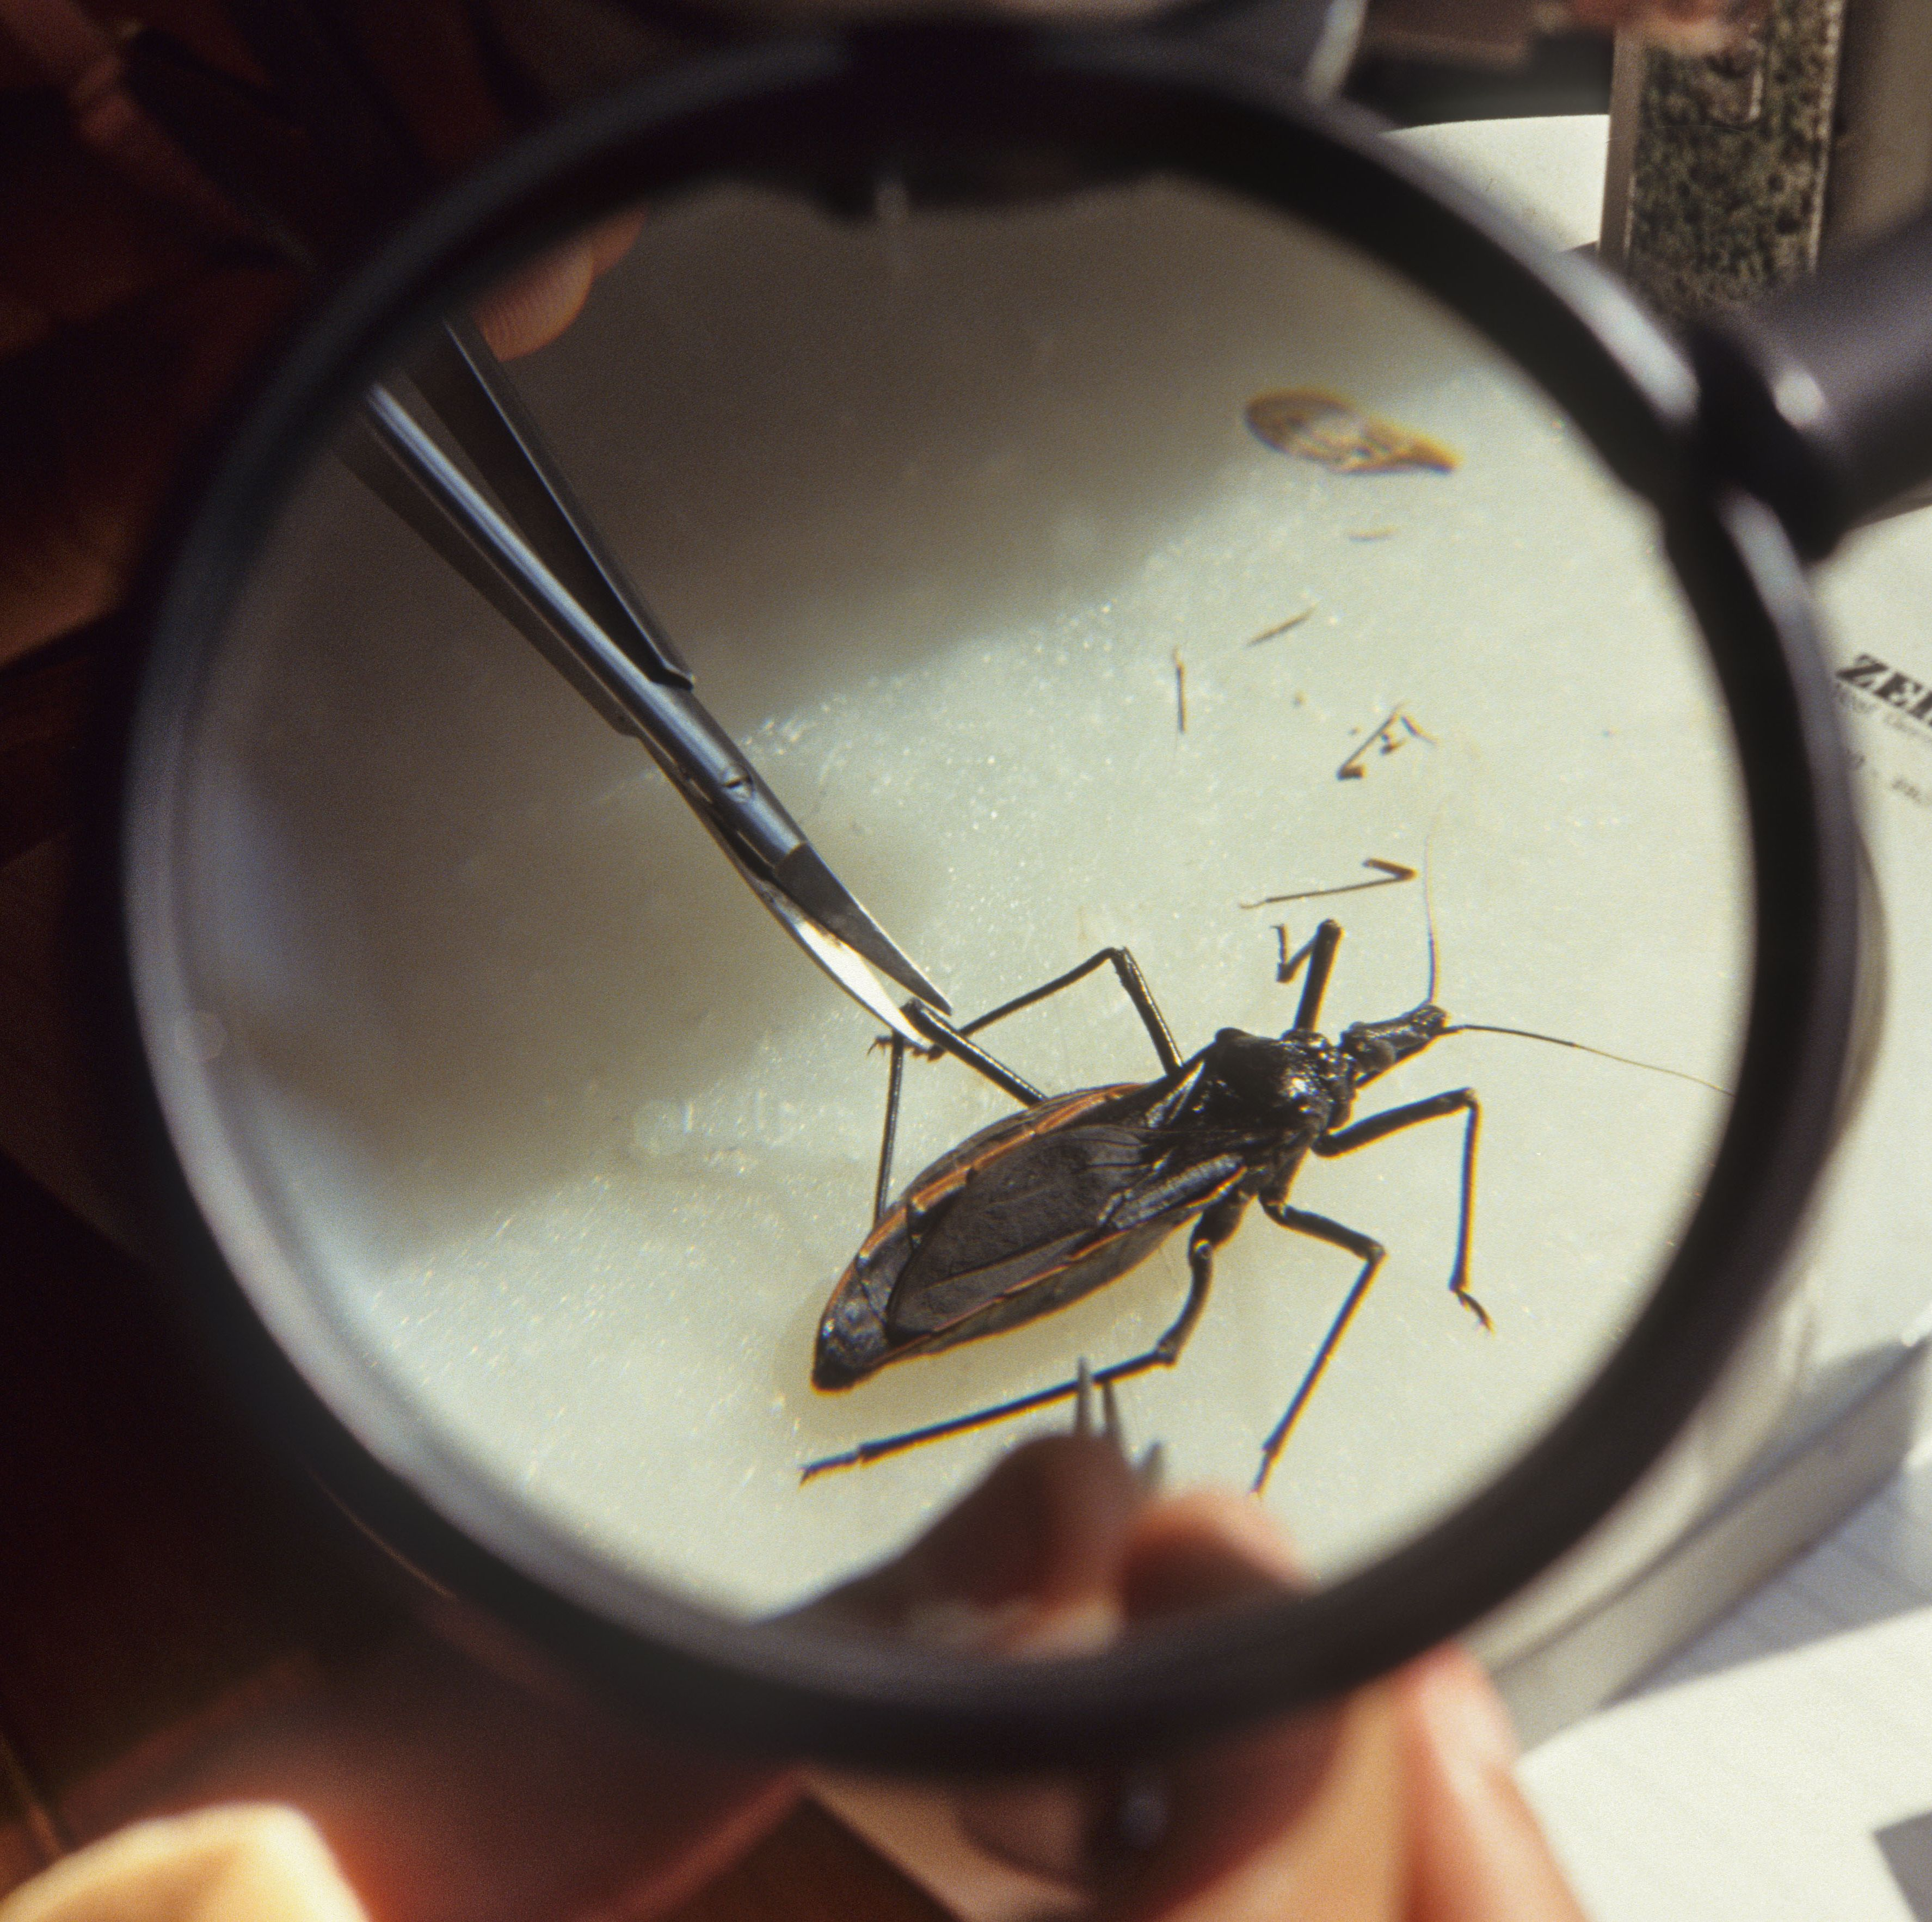 Blood-Sucking Kissing Bug Bites Girl in Delaware, Spotted Throughout U.S.